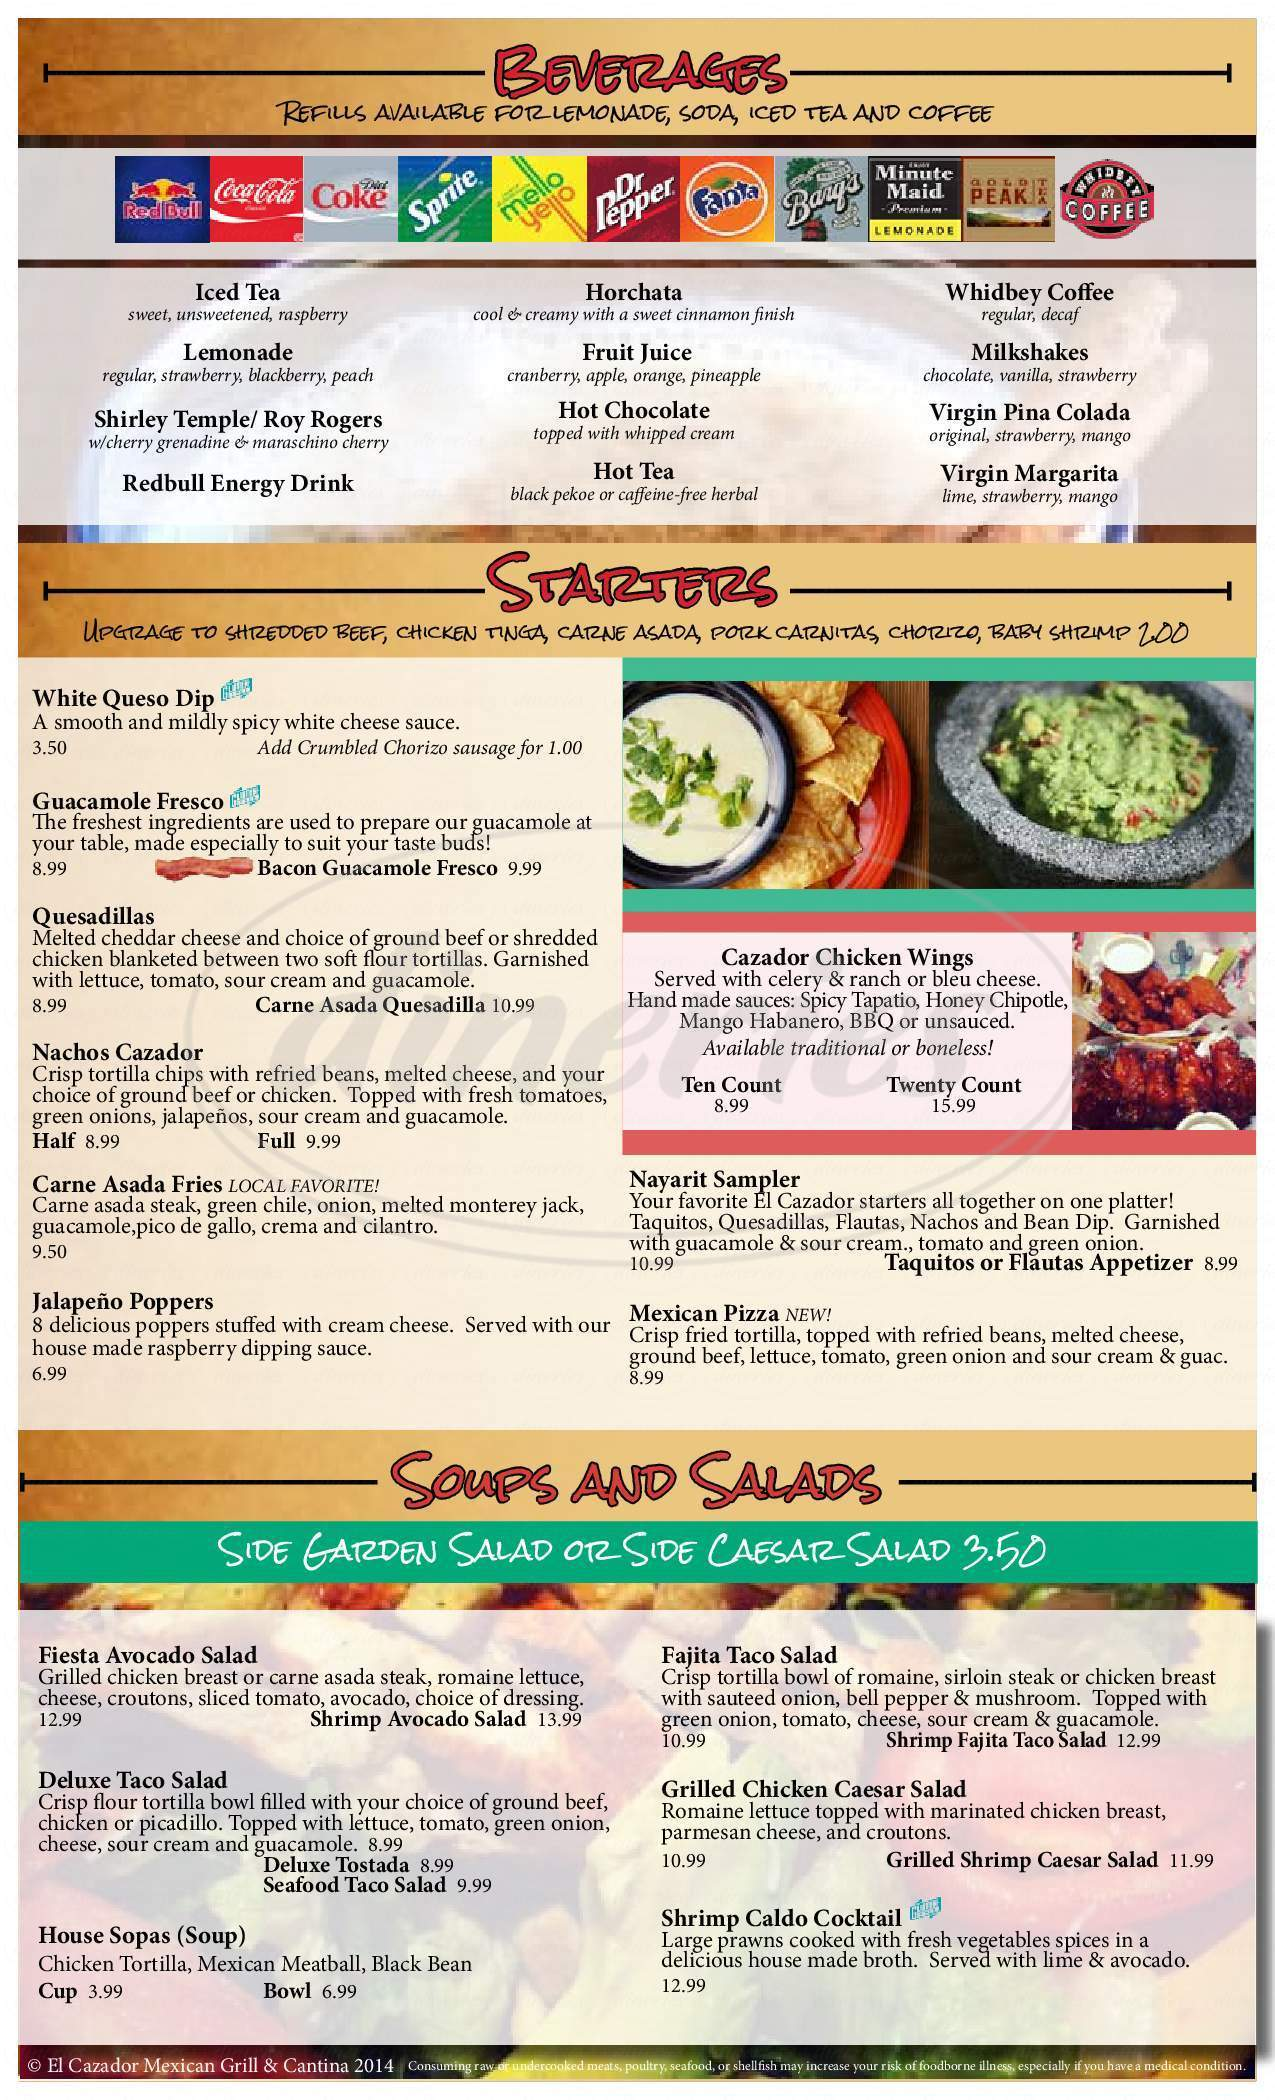 menu for El Cazador Mexican Grill and Cantina